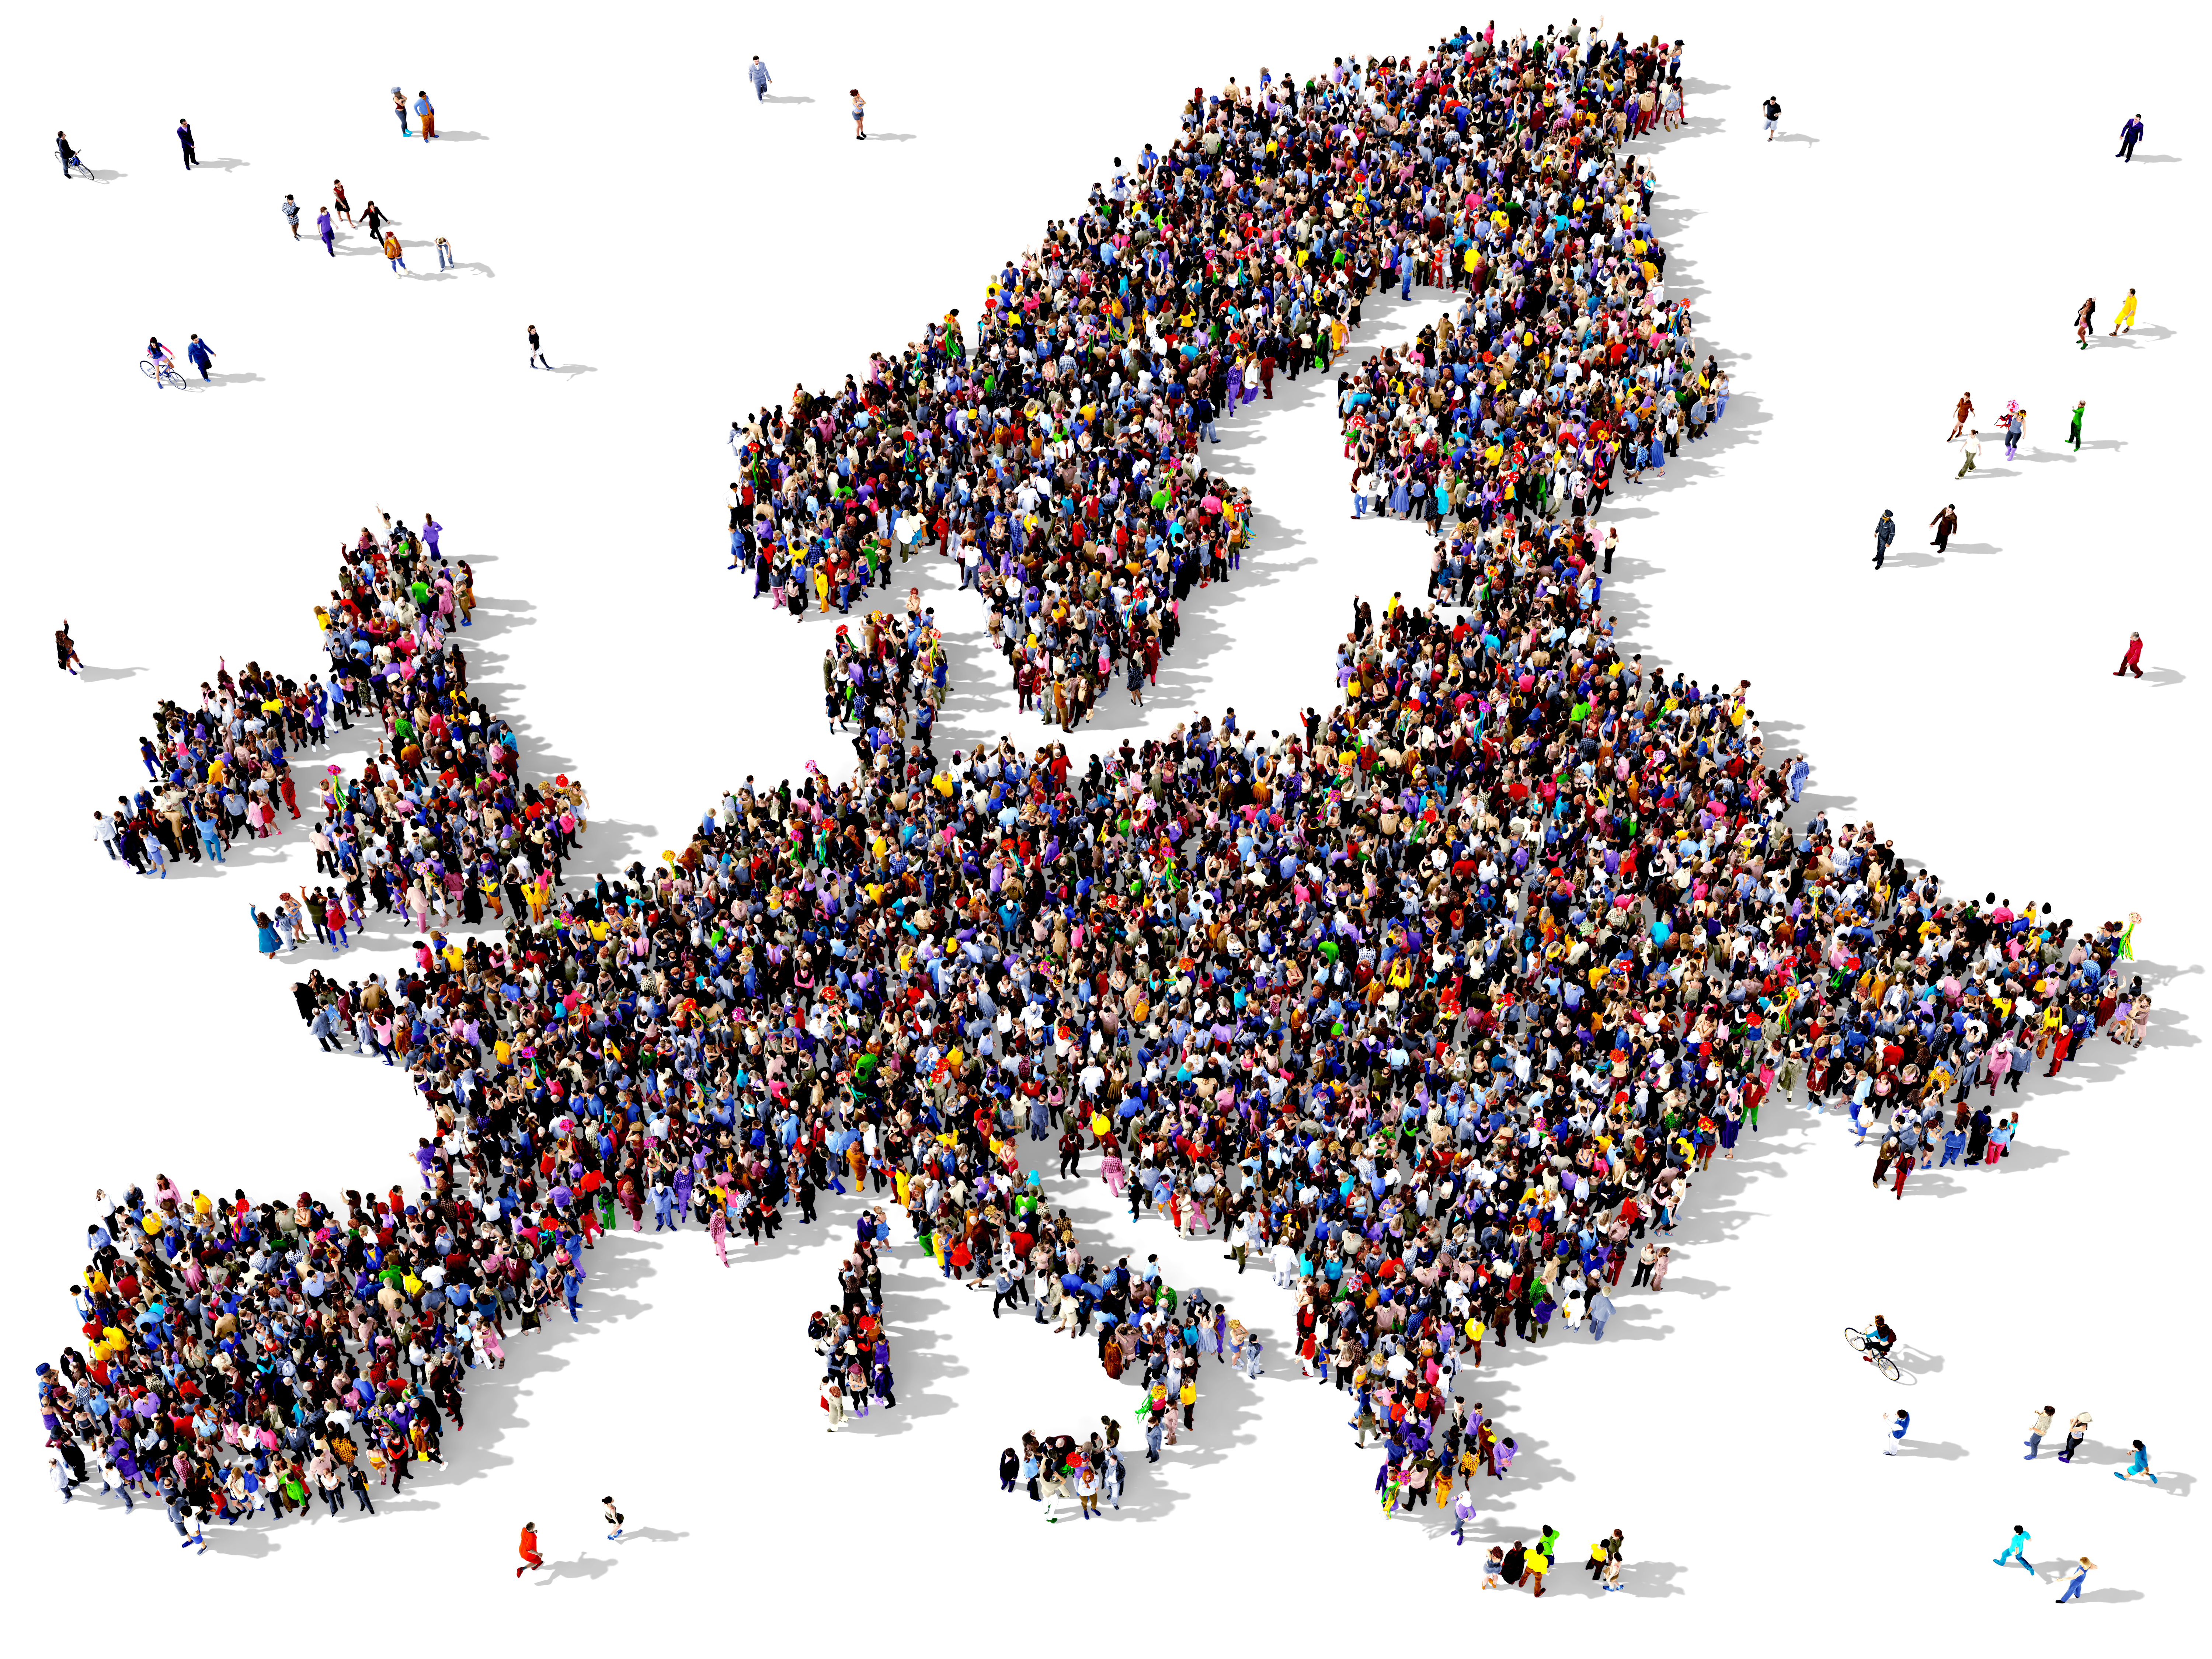 Placing European citizens at the heart of the Capital Markets Union project